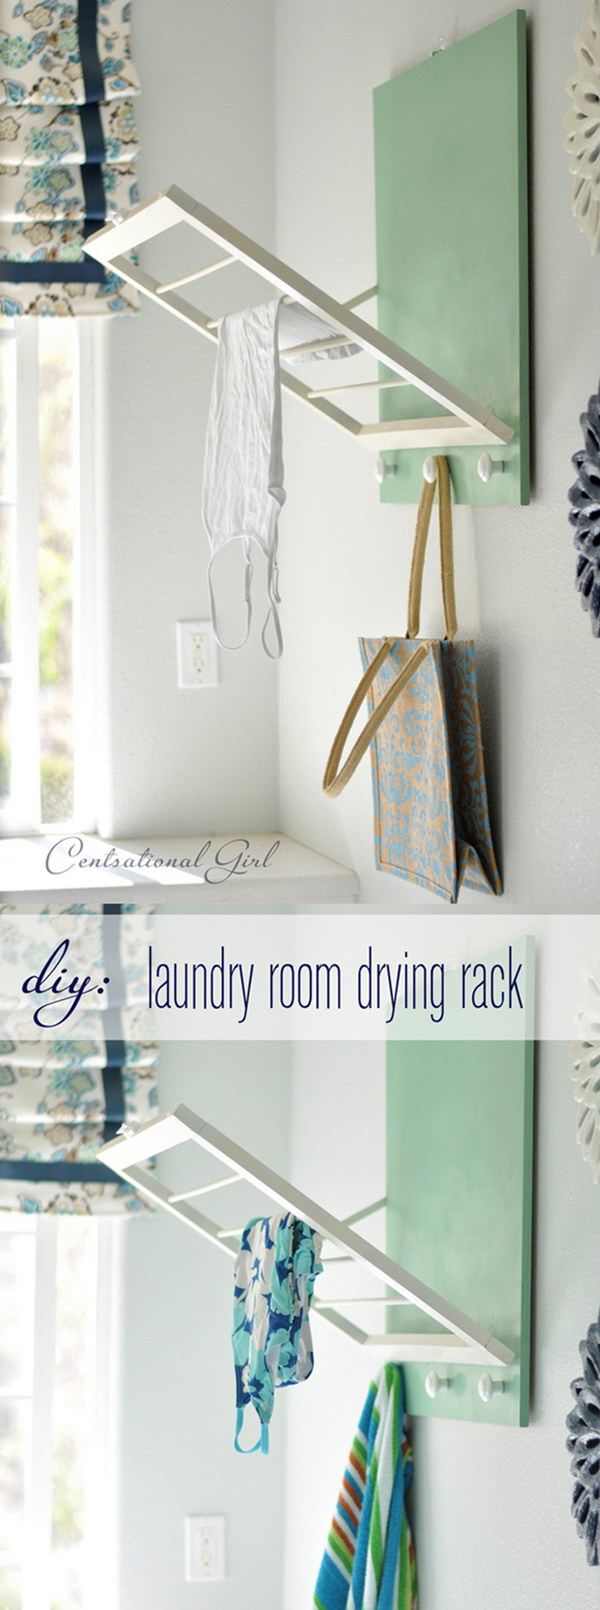 DIY Foldable Laundry Room Drying Rack